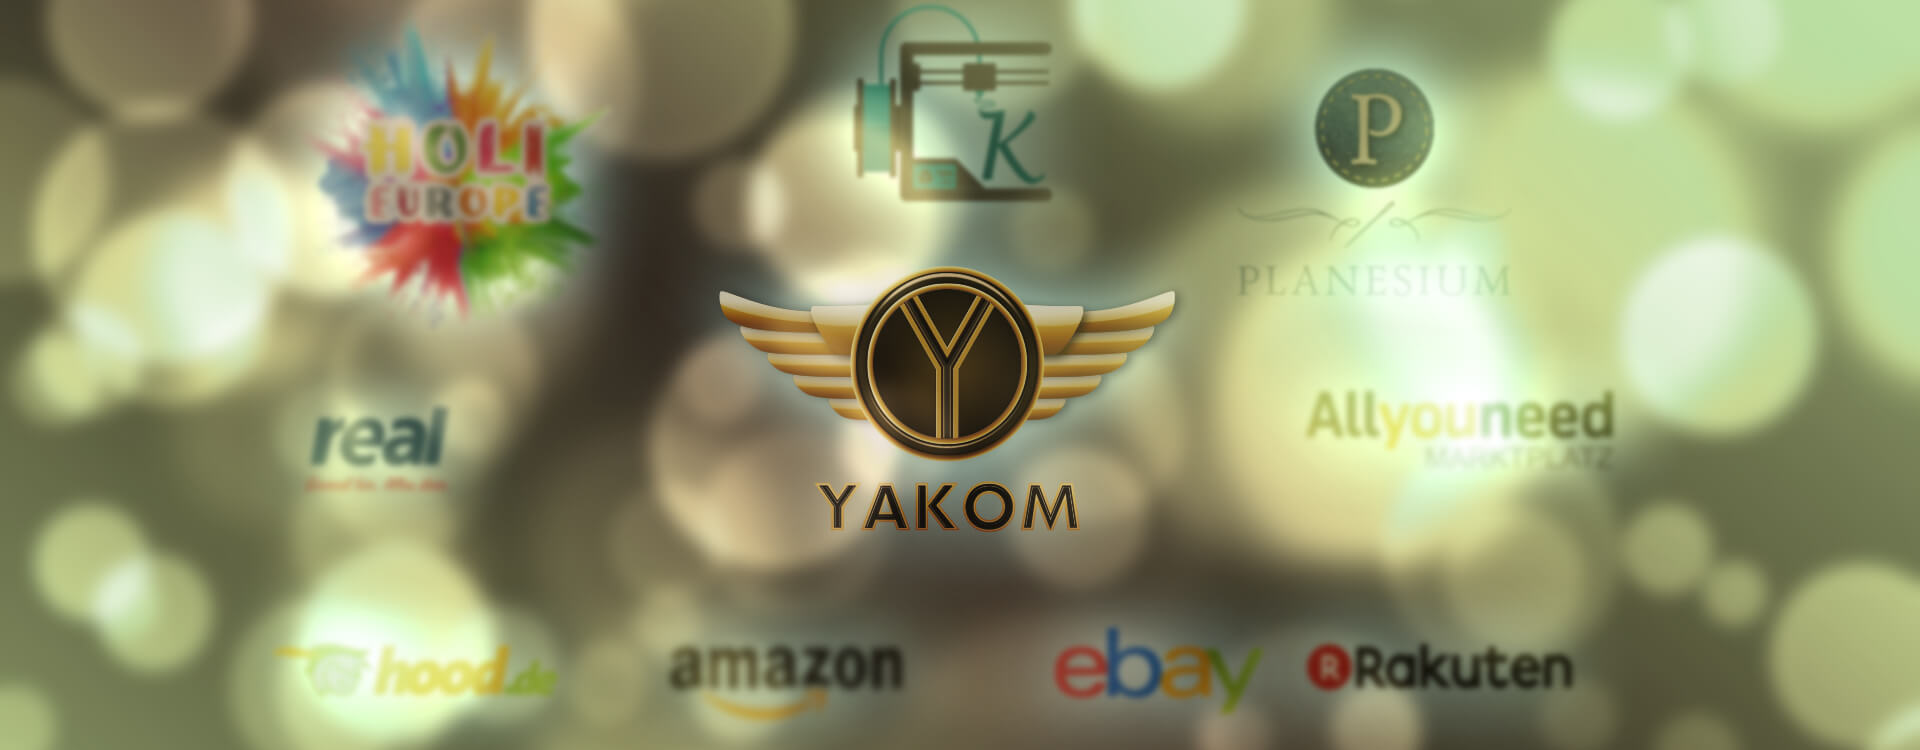 yakom_background